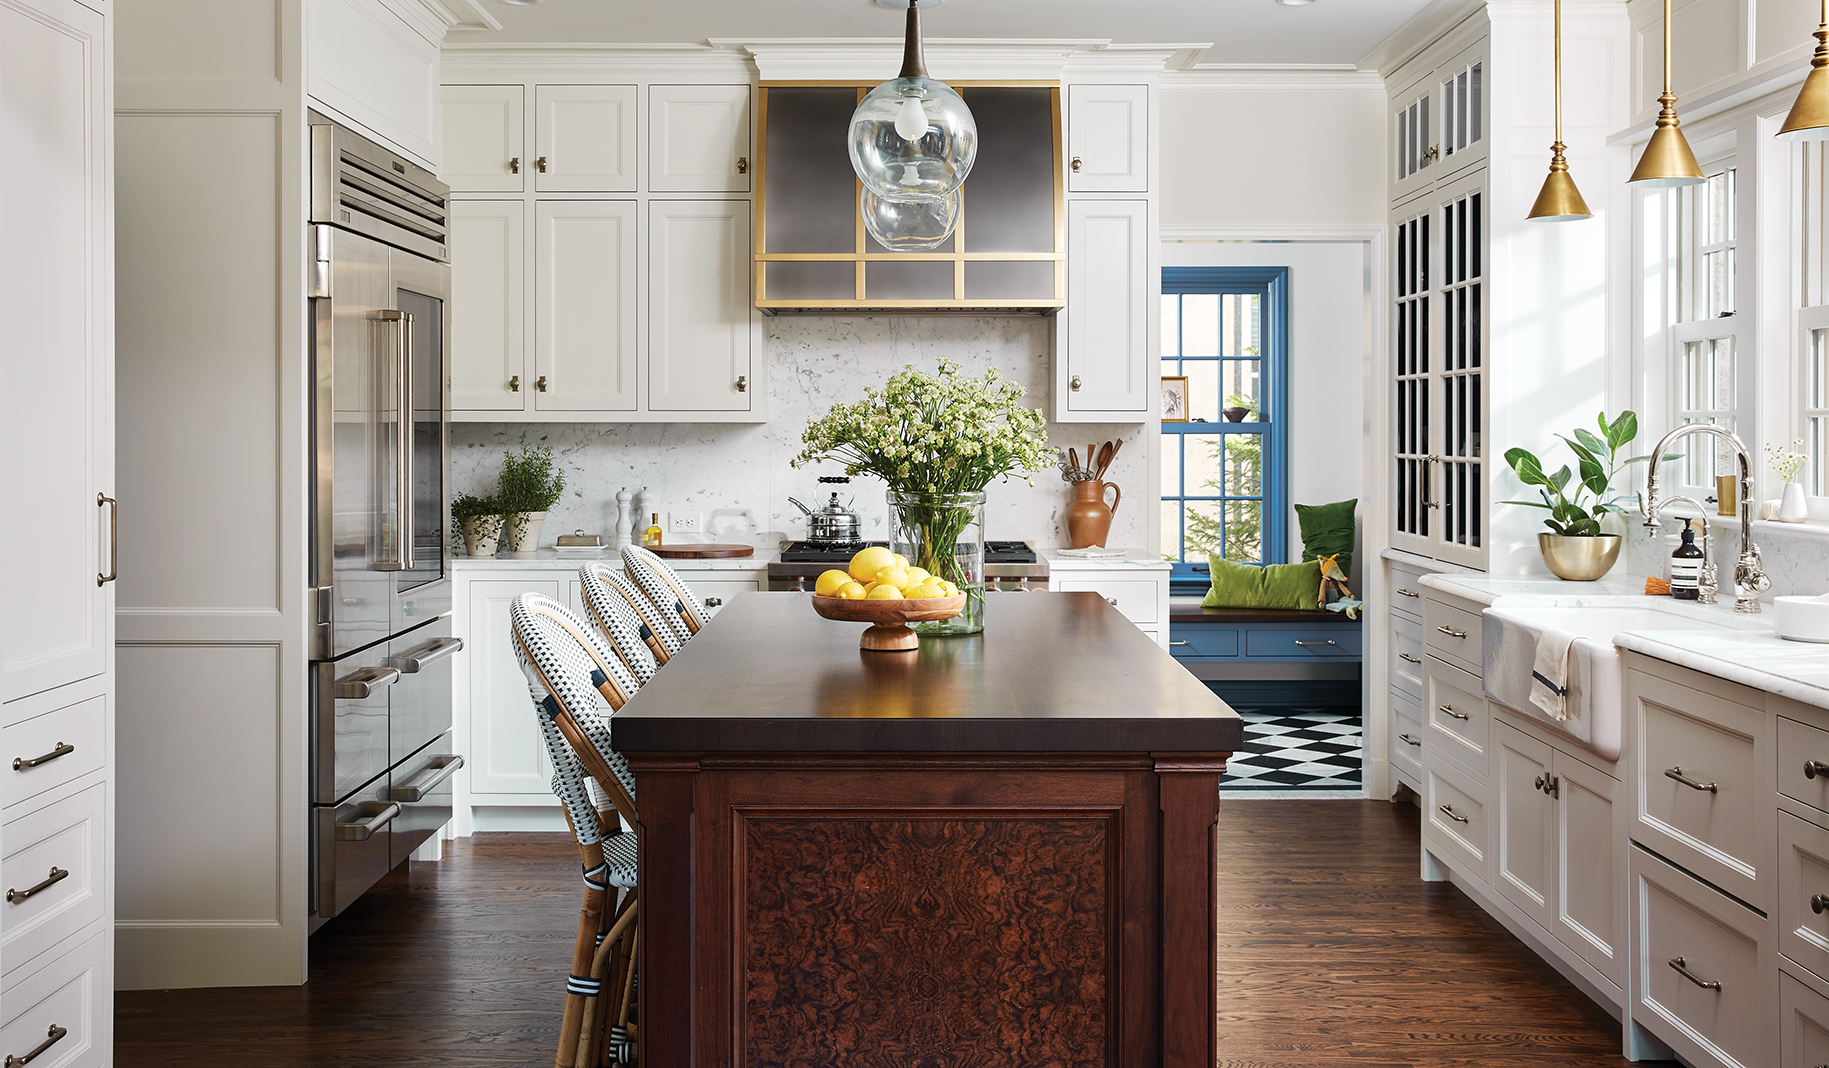 Chisel Architecture's remodel of a 1920s Tudor home. Photo by Alyssa Lee.